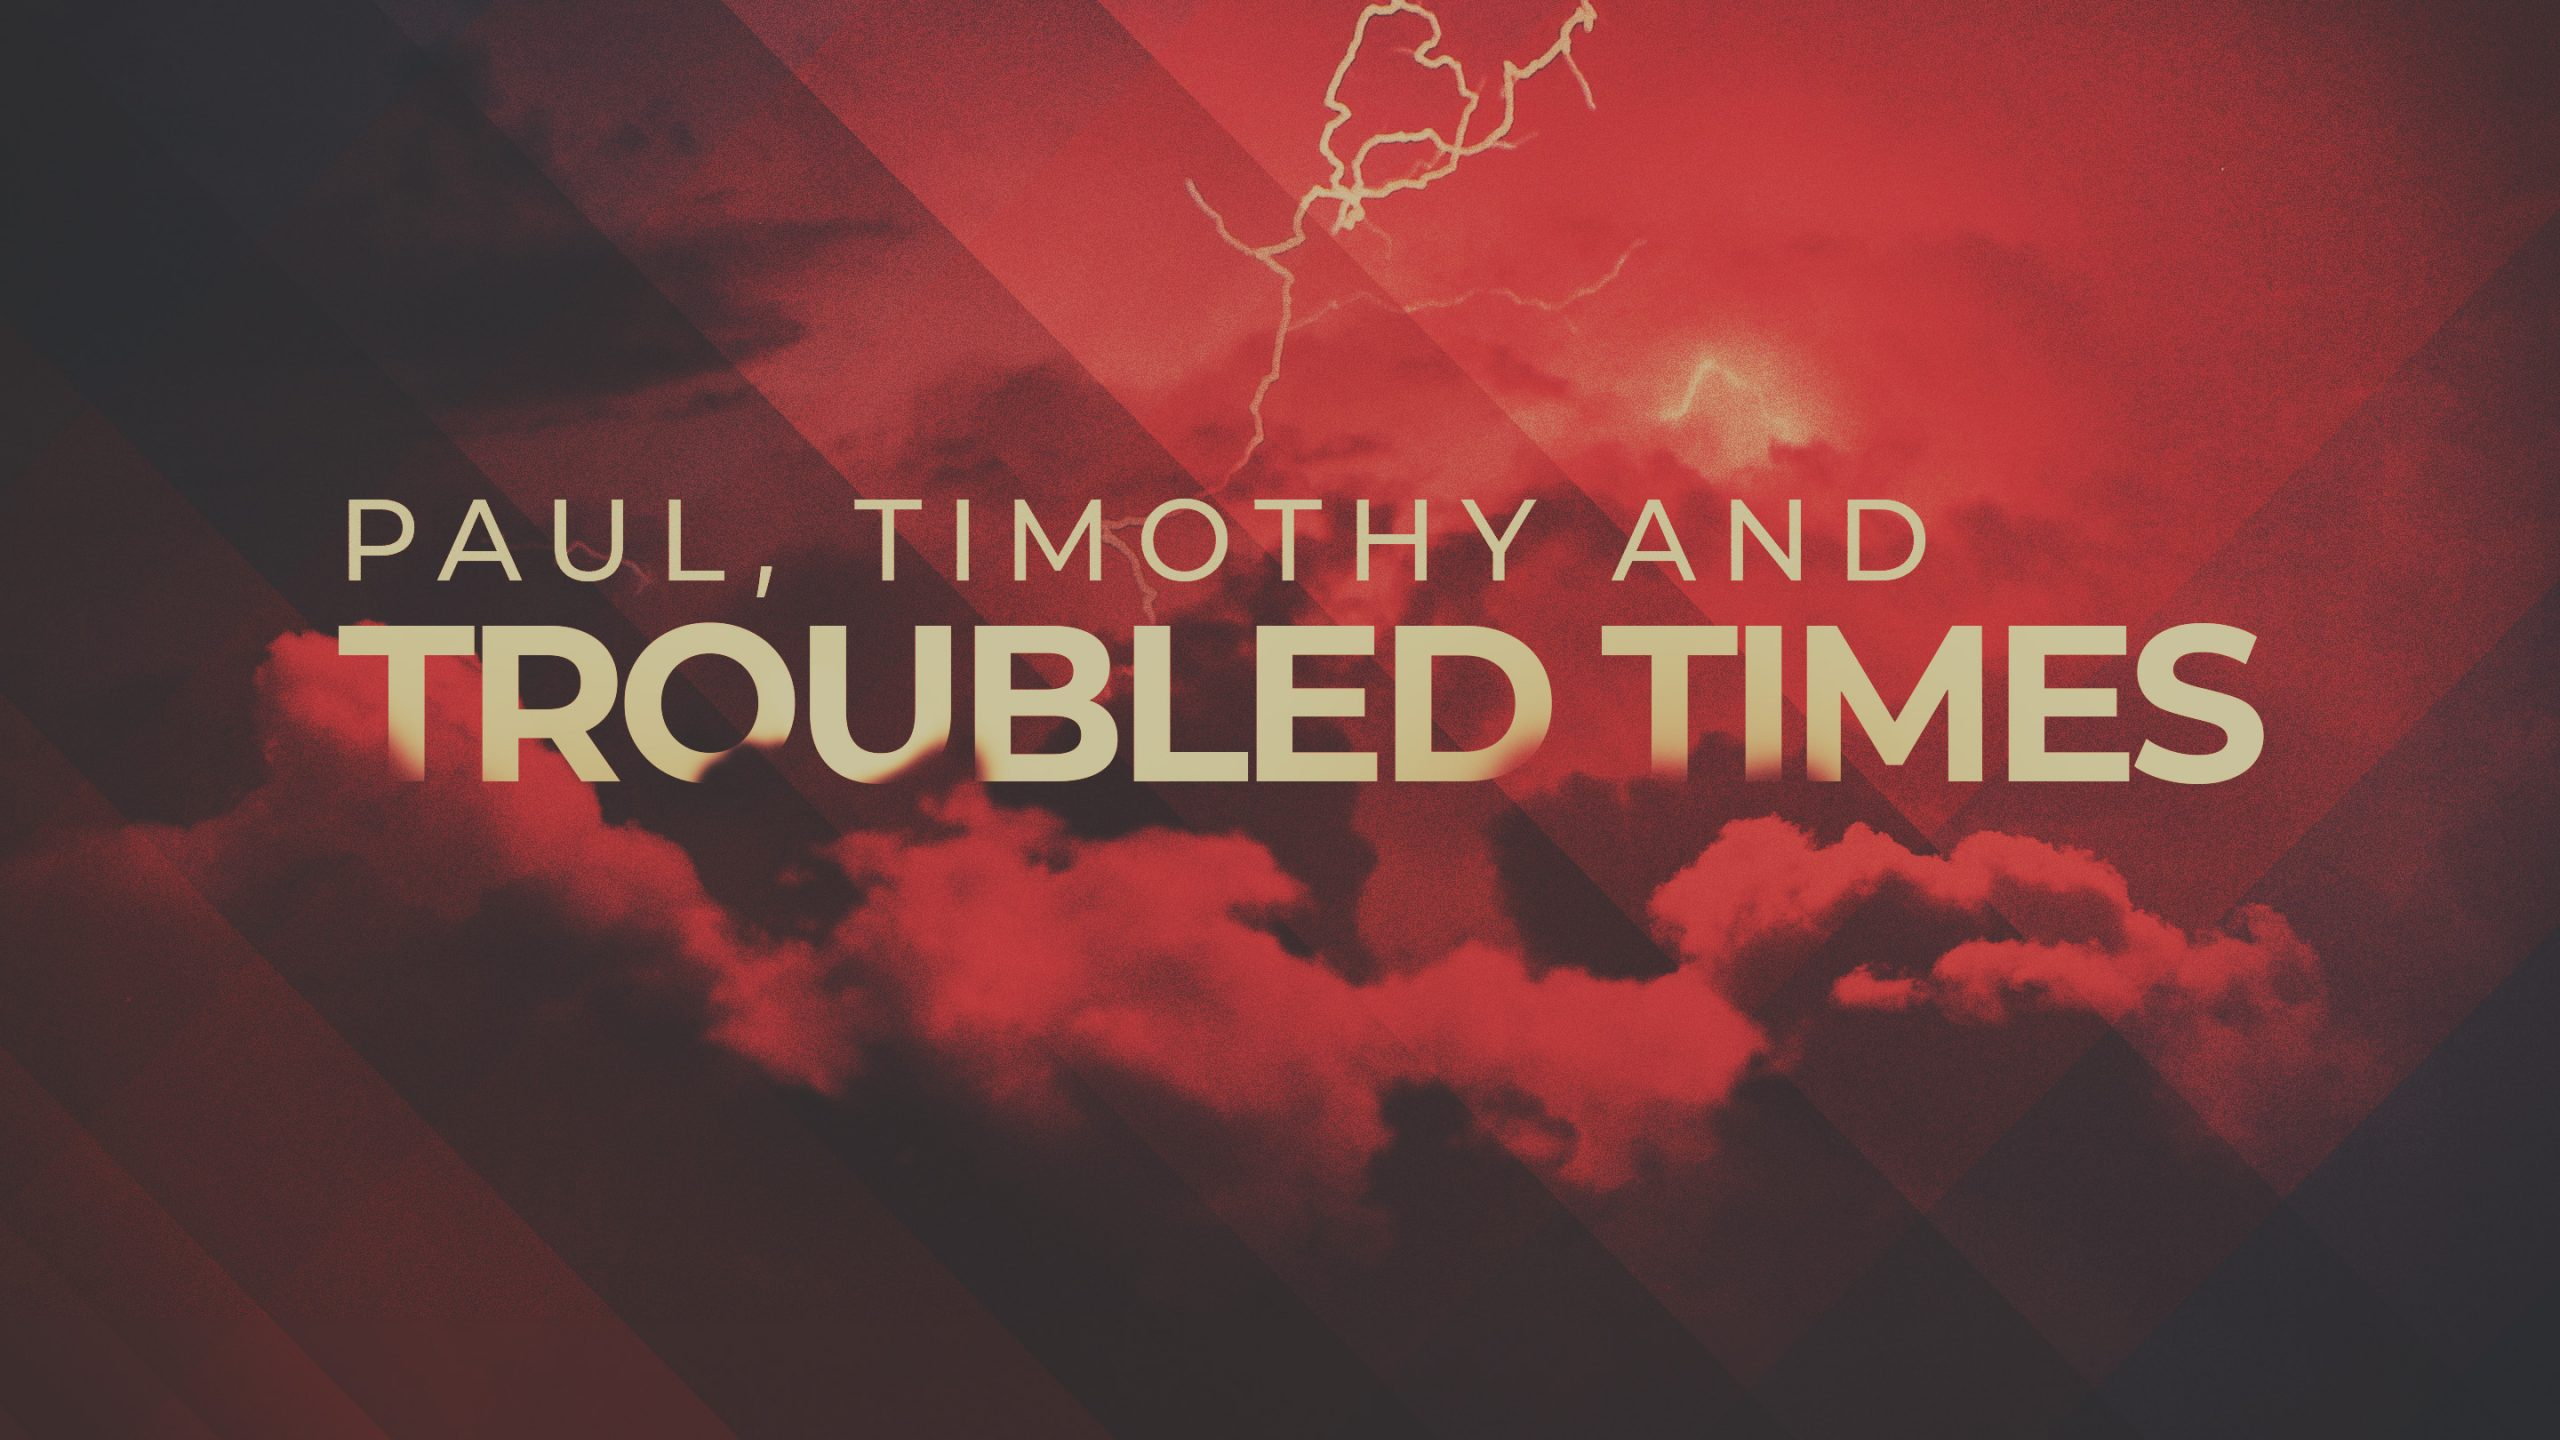 Paul, Timothy and Troubled Times Part 11